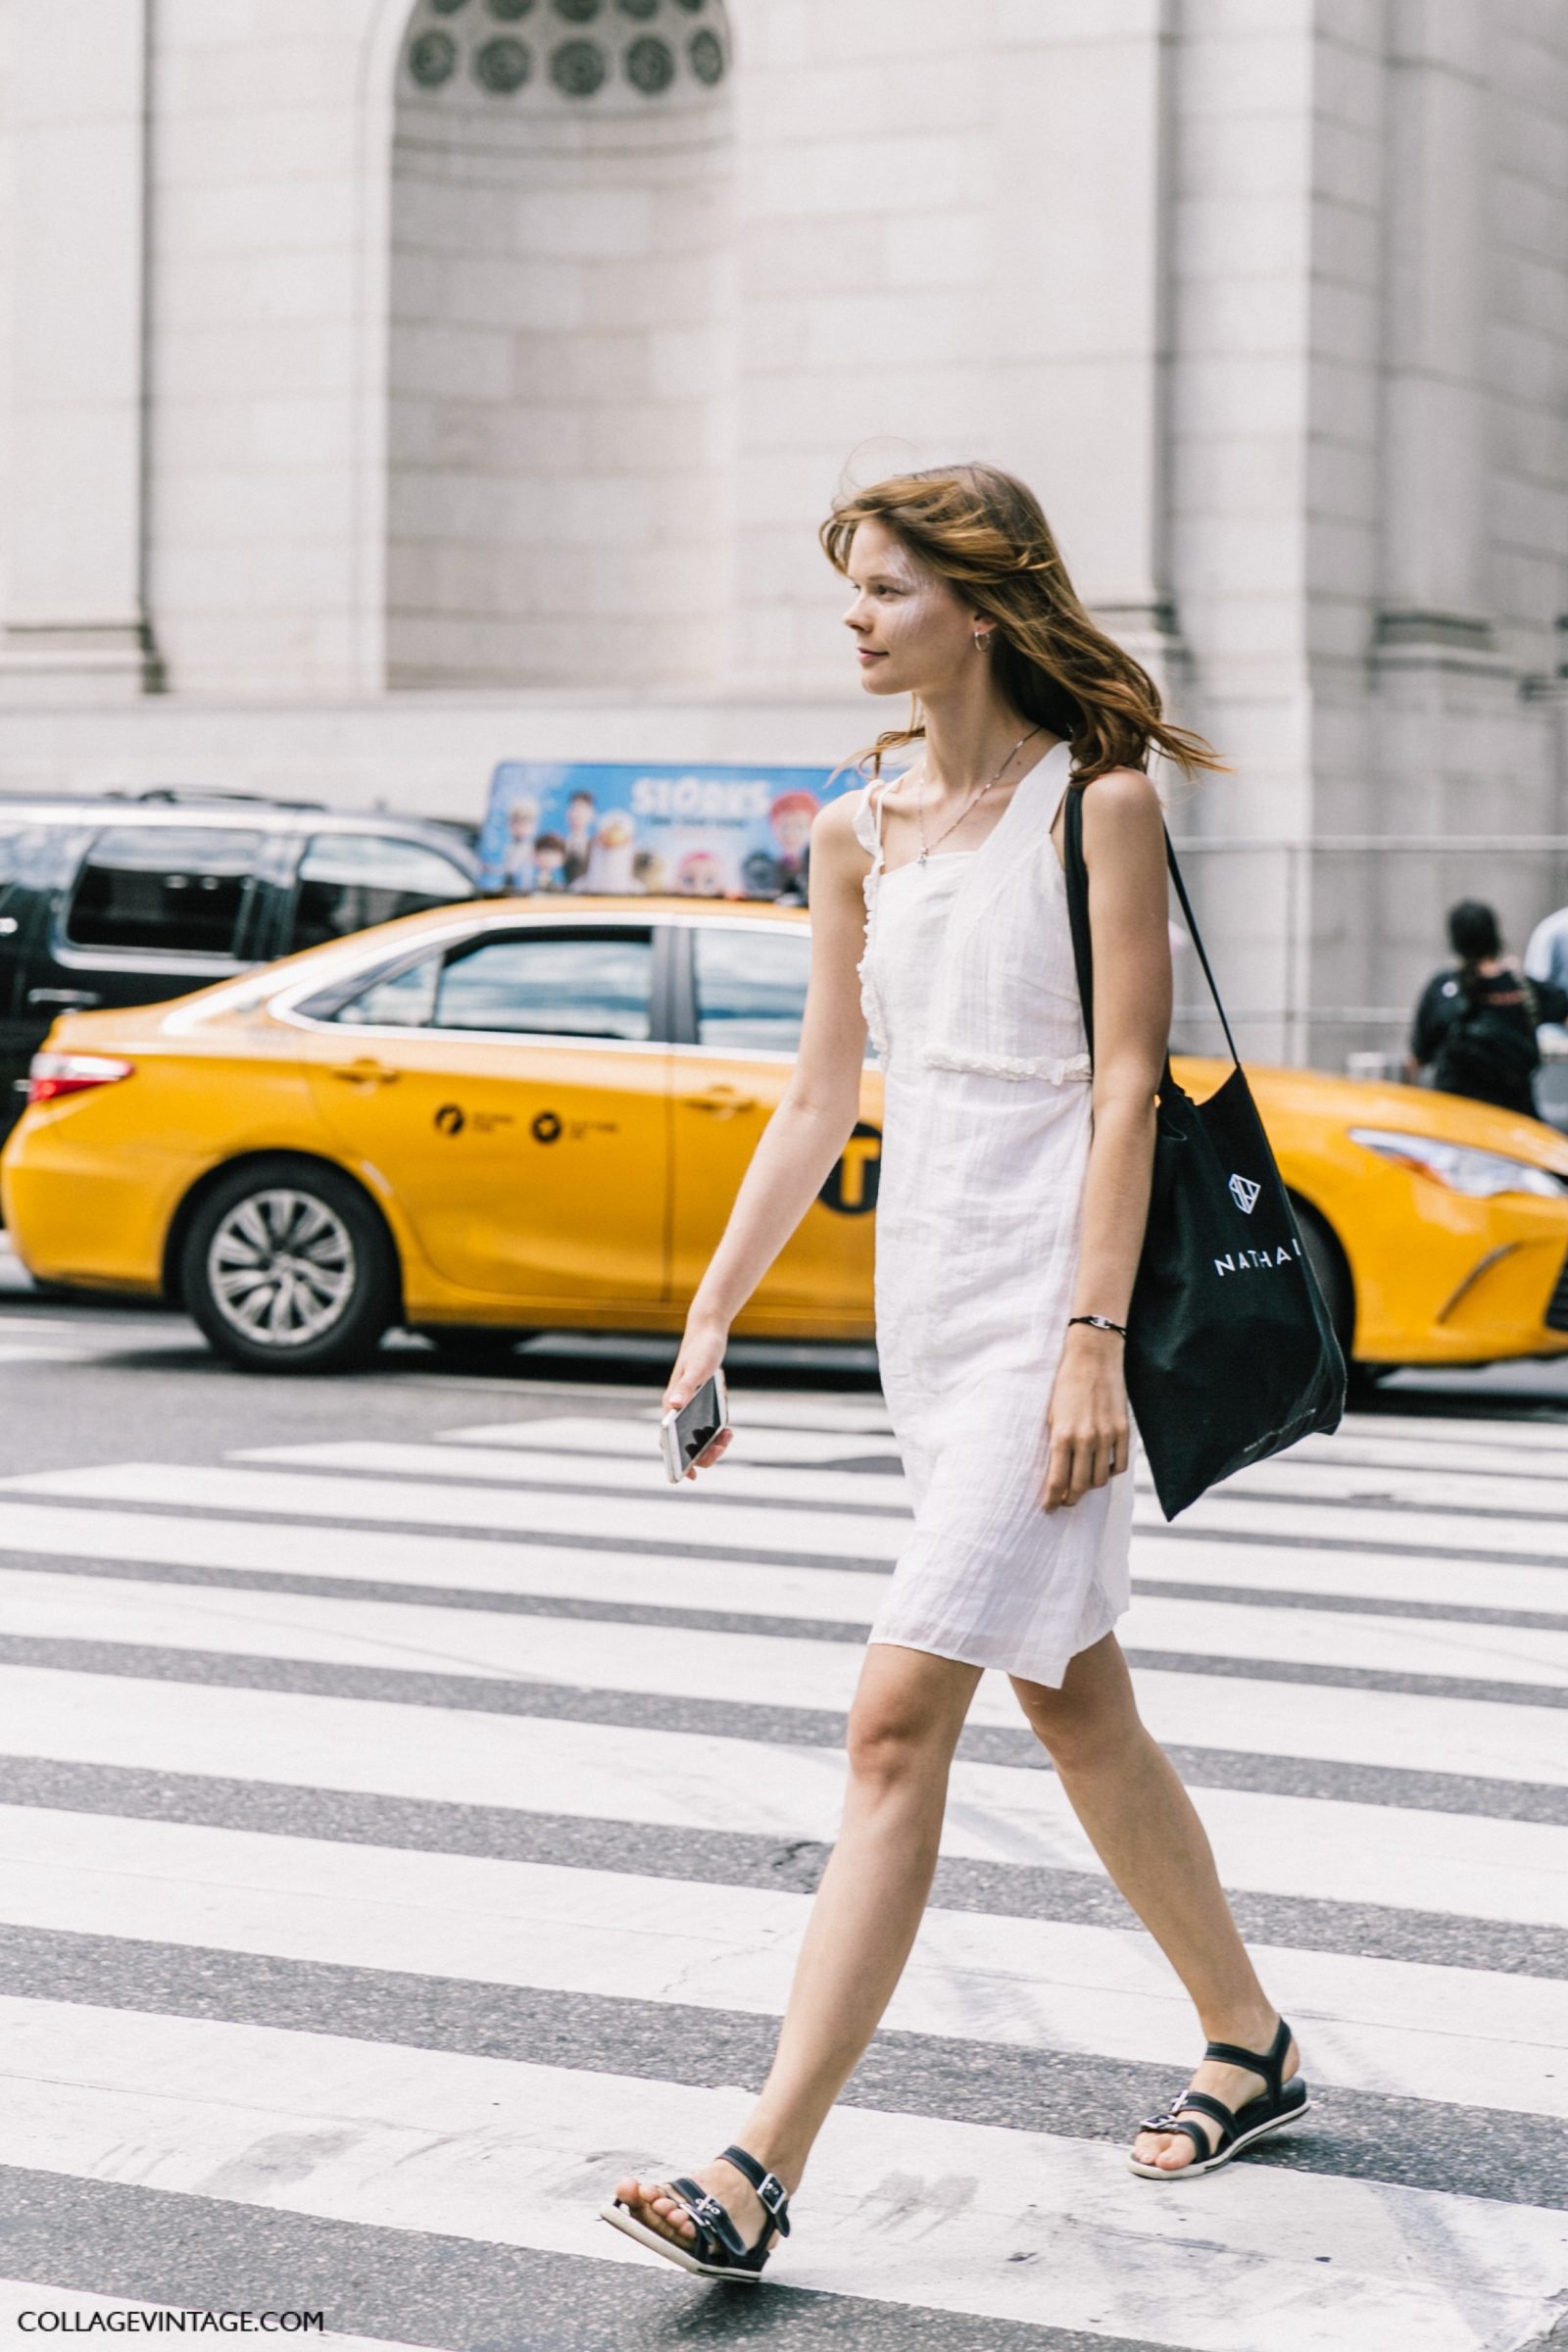 nyfw-new_york_fashion_week_ss17-street_style-outfits-collage_vintage-vintage-tome-128